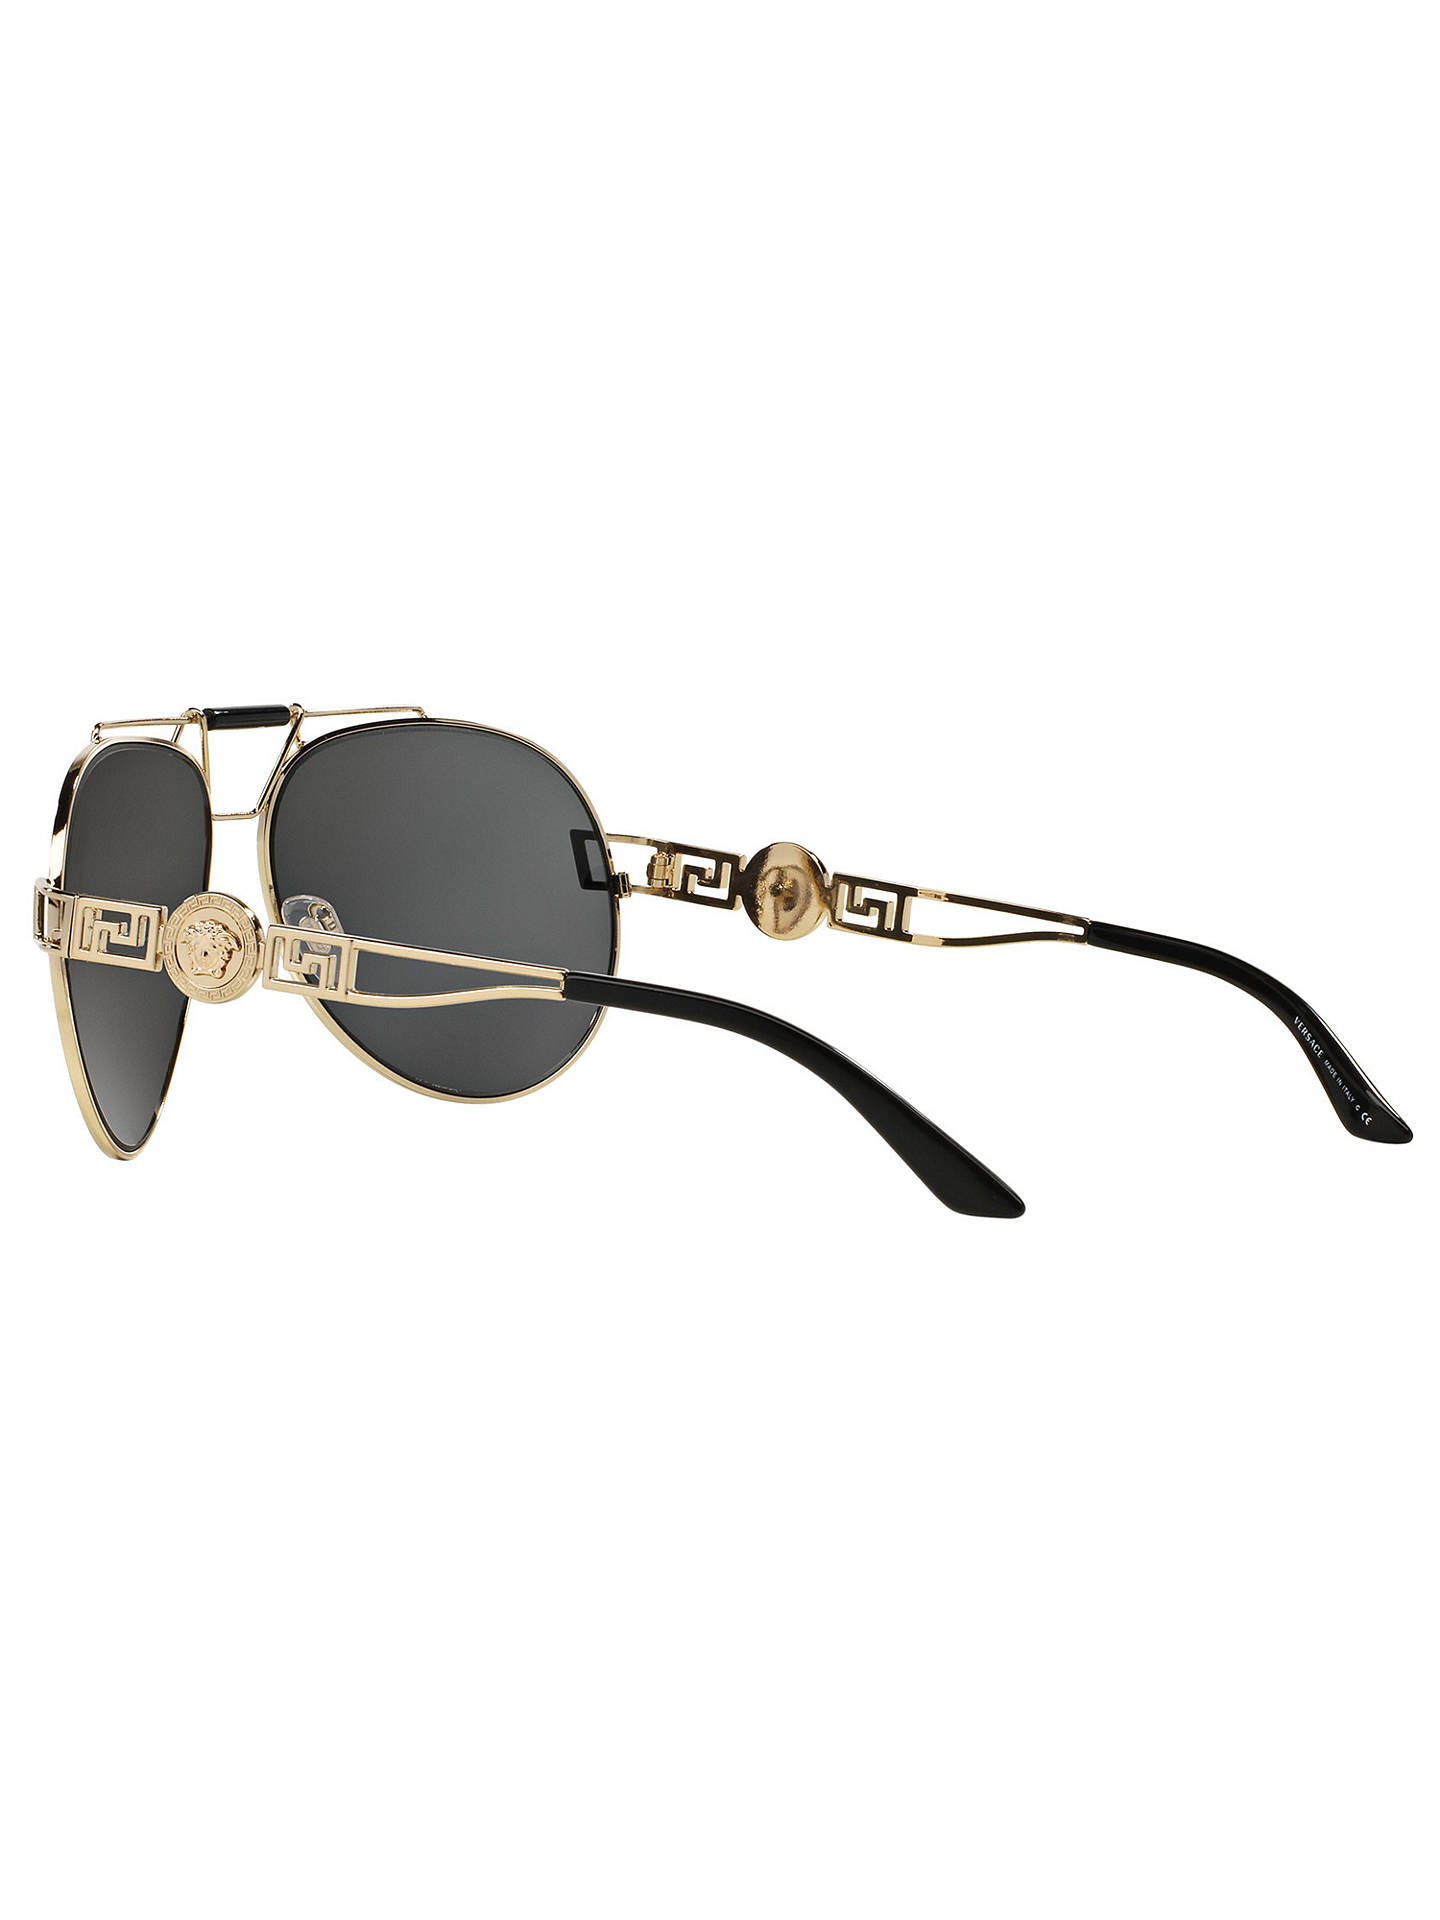 8a2642318f Versace VE2160 Aviator Sunglasses at John Lewis   Partners